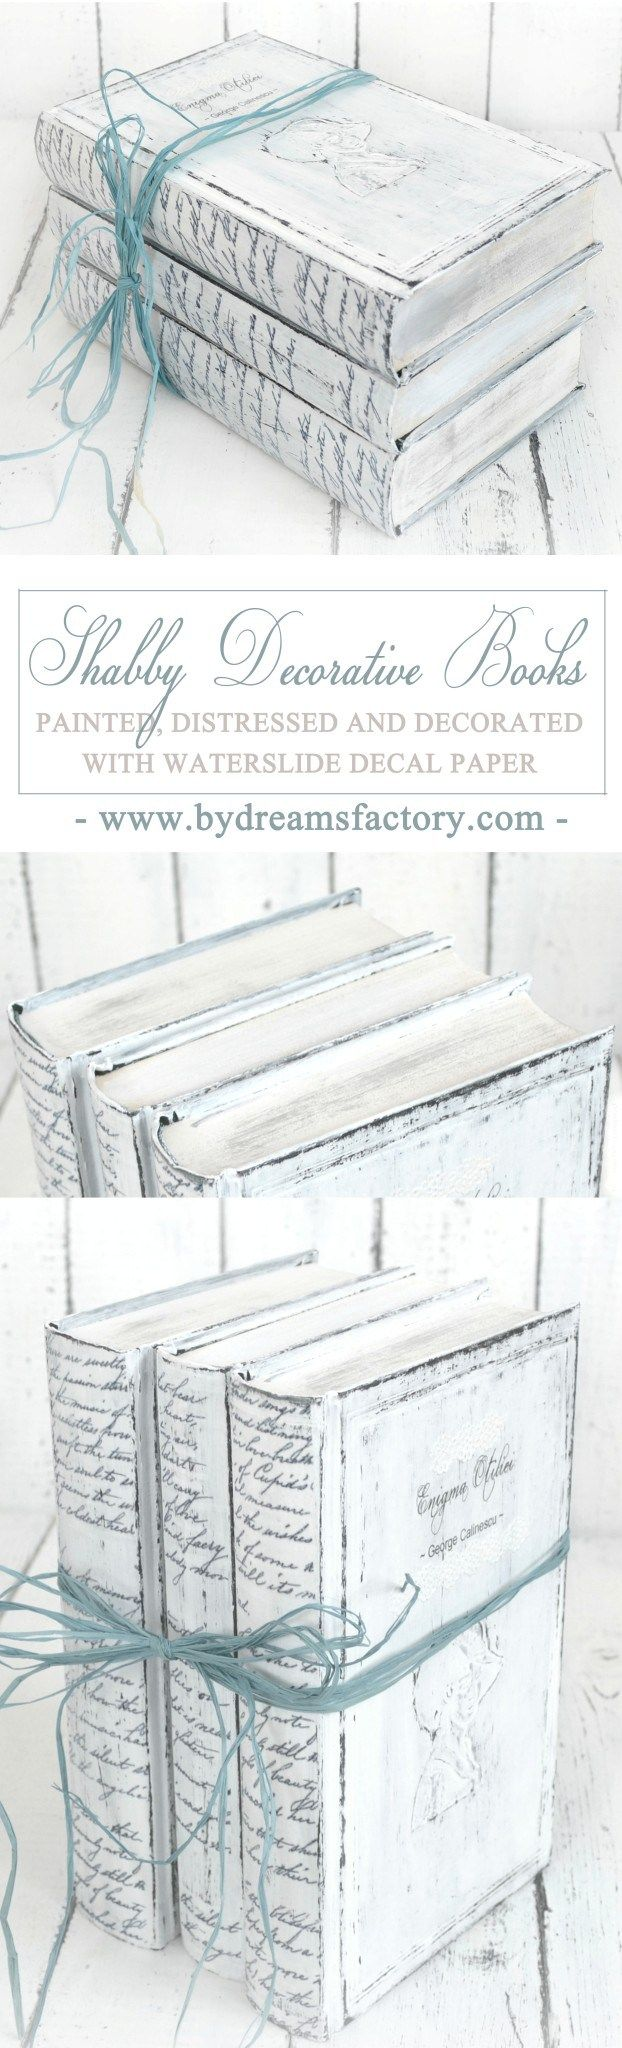 How To Make A Decorative Book Cover ~ Diy shabby decorative books shabby decorating and